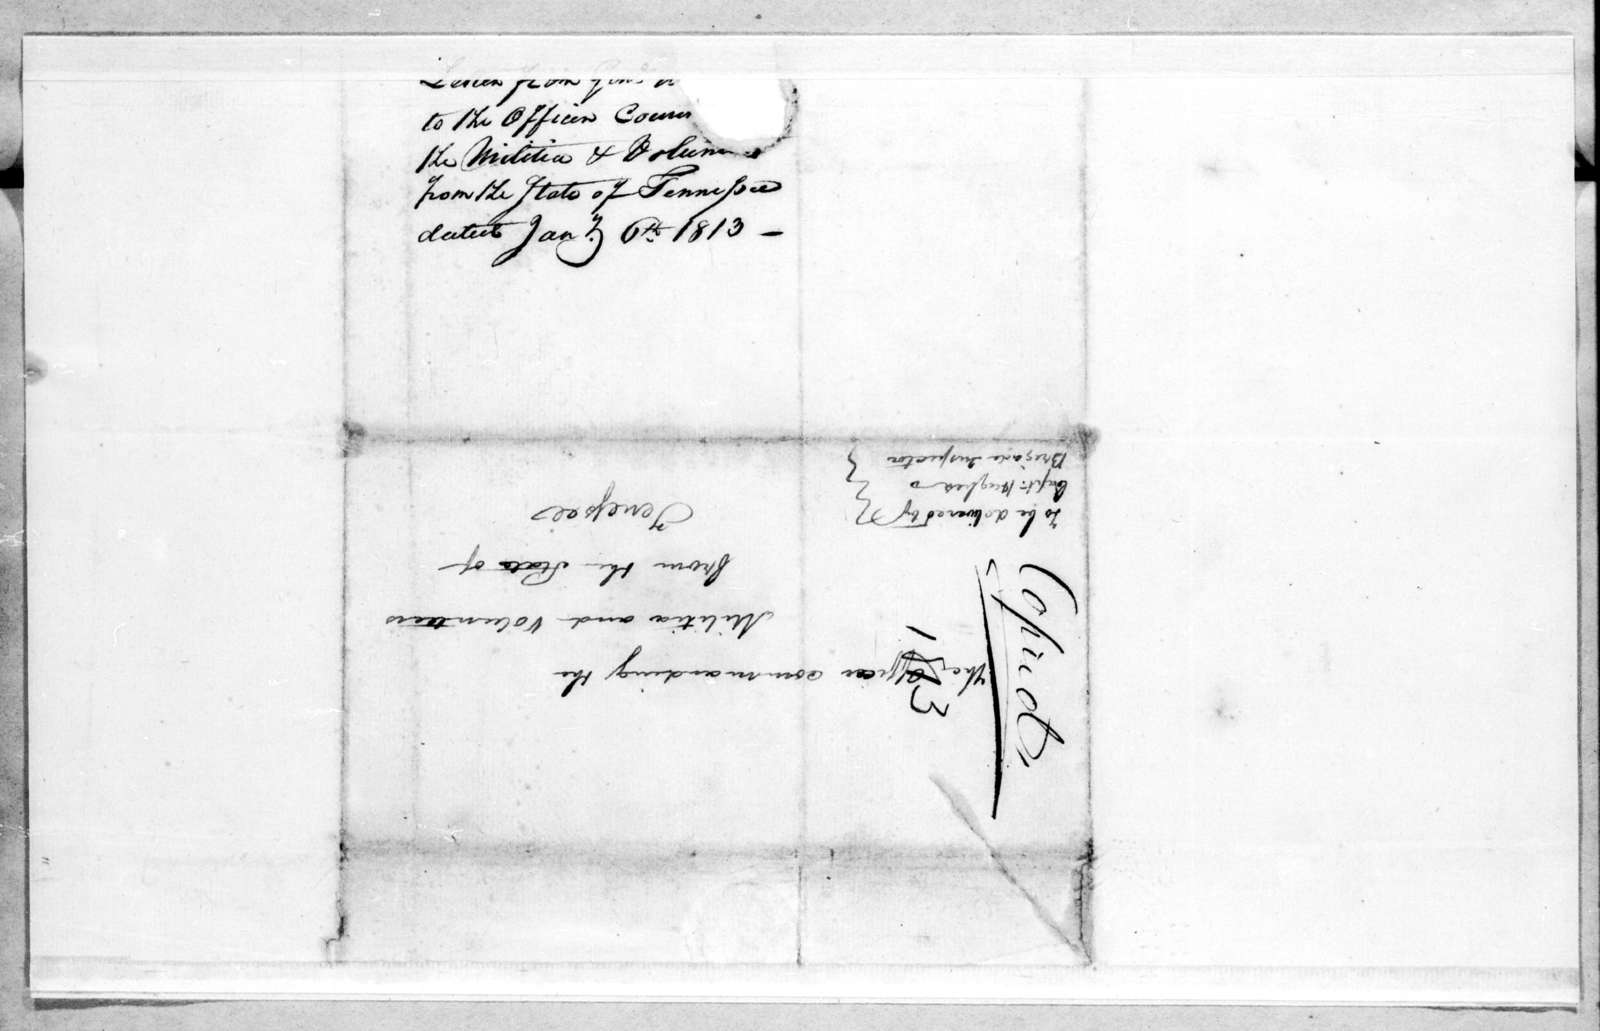 Unknown to Andrew Jackson, January 6, 1813